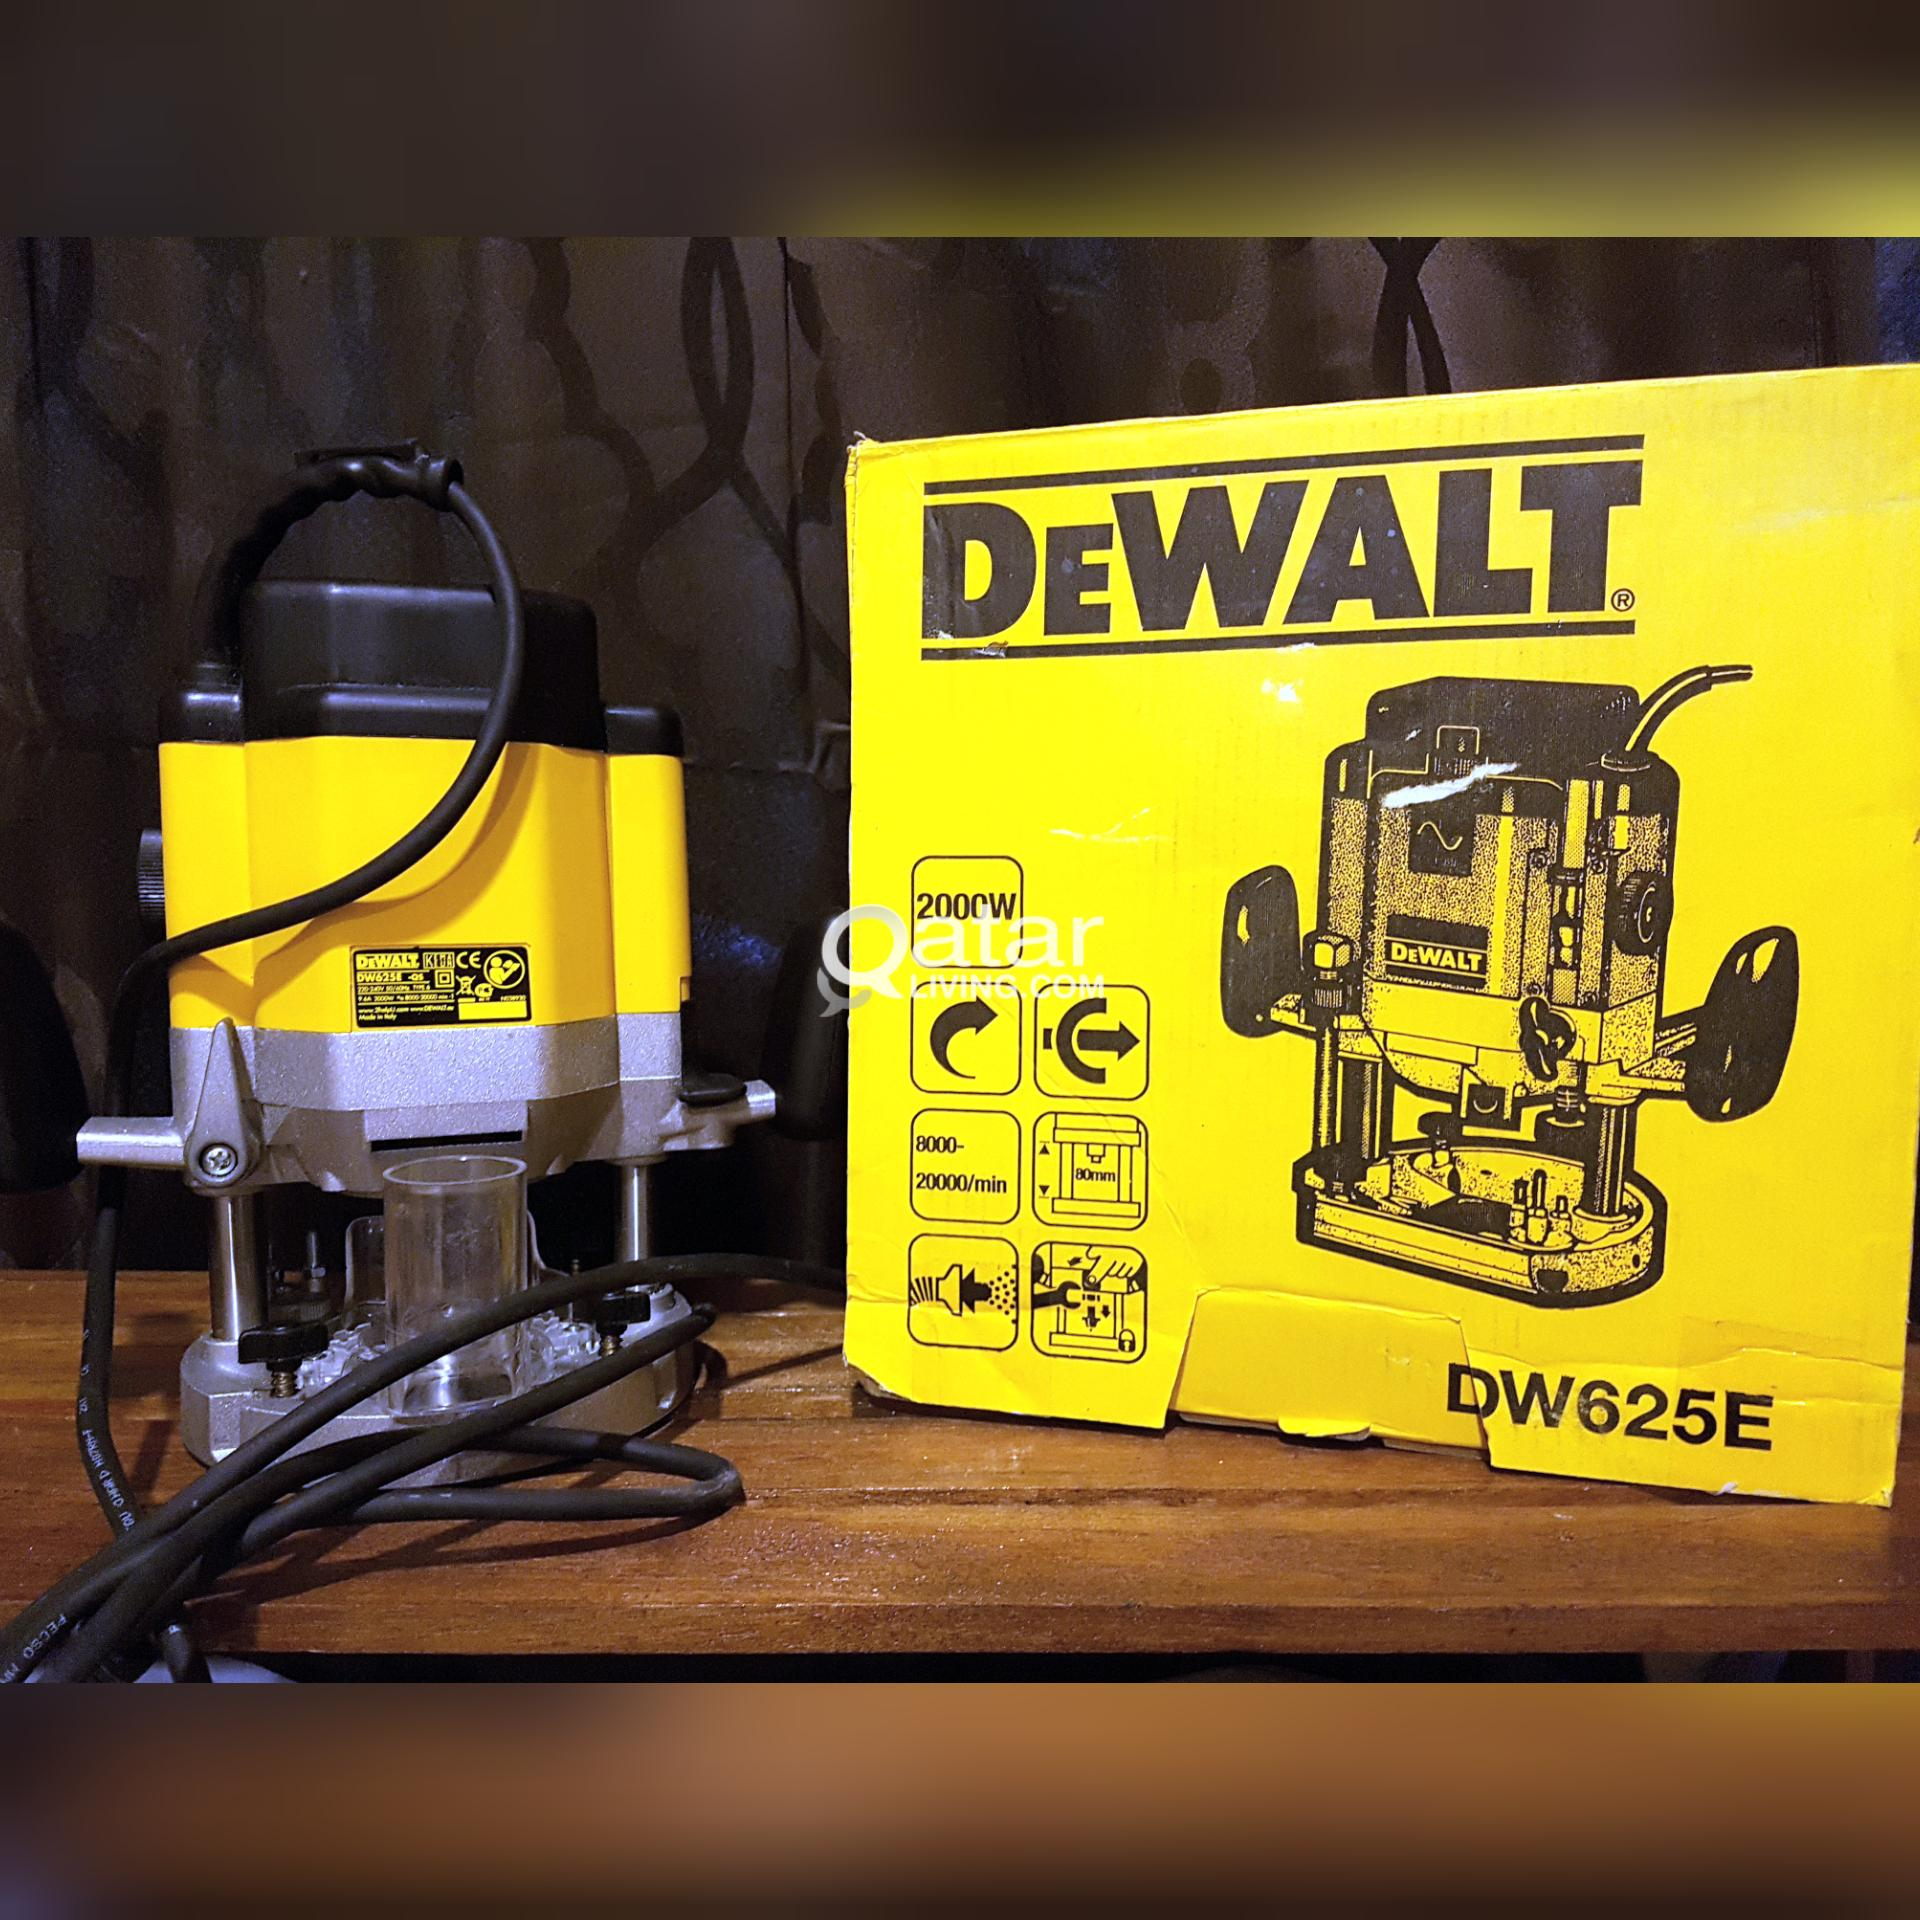 Router table dewalt dw625 images wiring table and diagram sample router table dewalt dw625 image collections wiring table and router table for dewalt dw625 gallery wiring greentooth Image collections